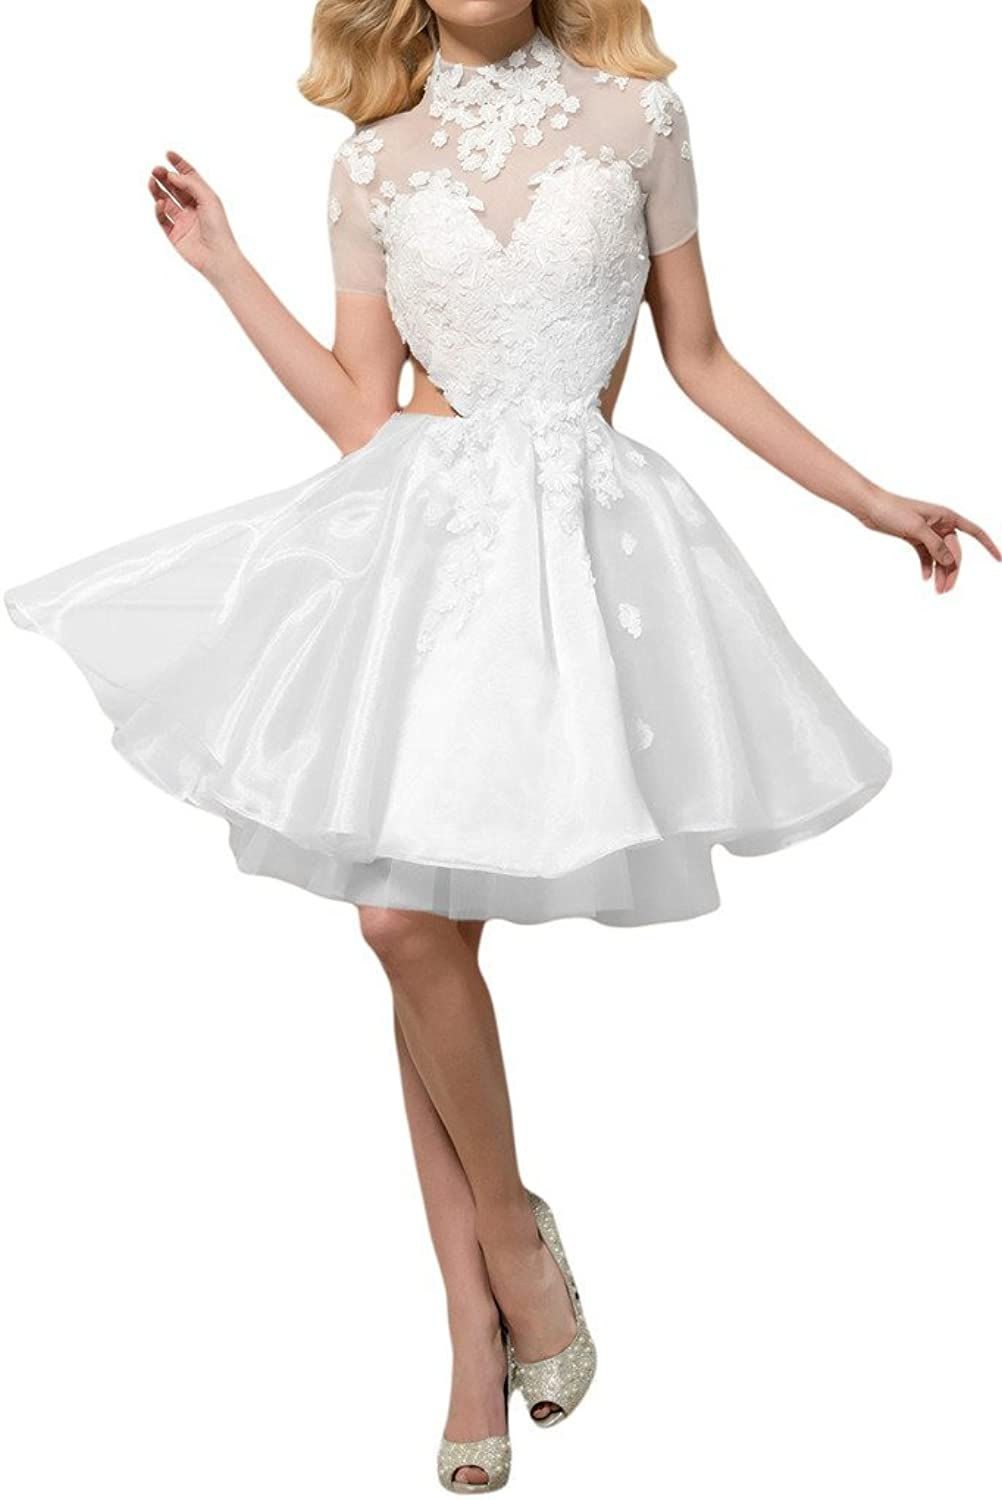 Angel Bride Cute Layers Little White Dresses HeartShaped Lace Prom Dress